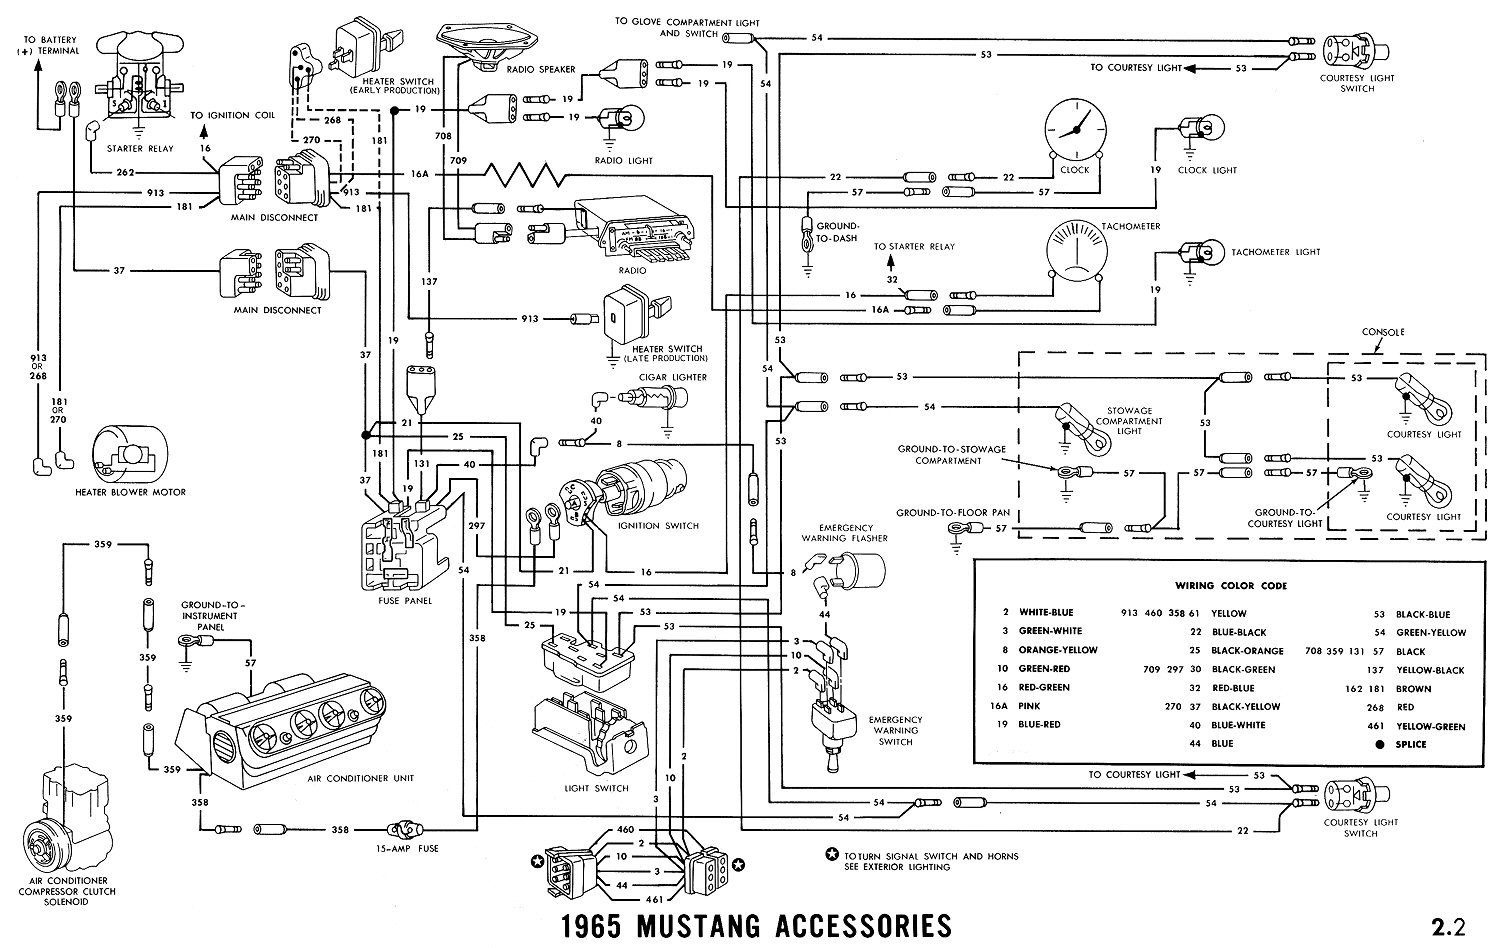 1965 ford mustang fuse box diagram wiring schematic 1991 ford explorer fuse box diagram wiring schematic